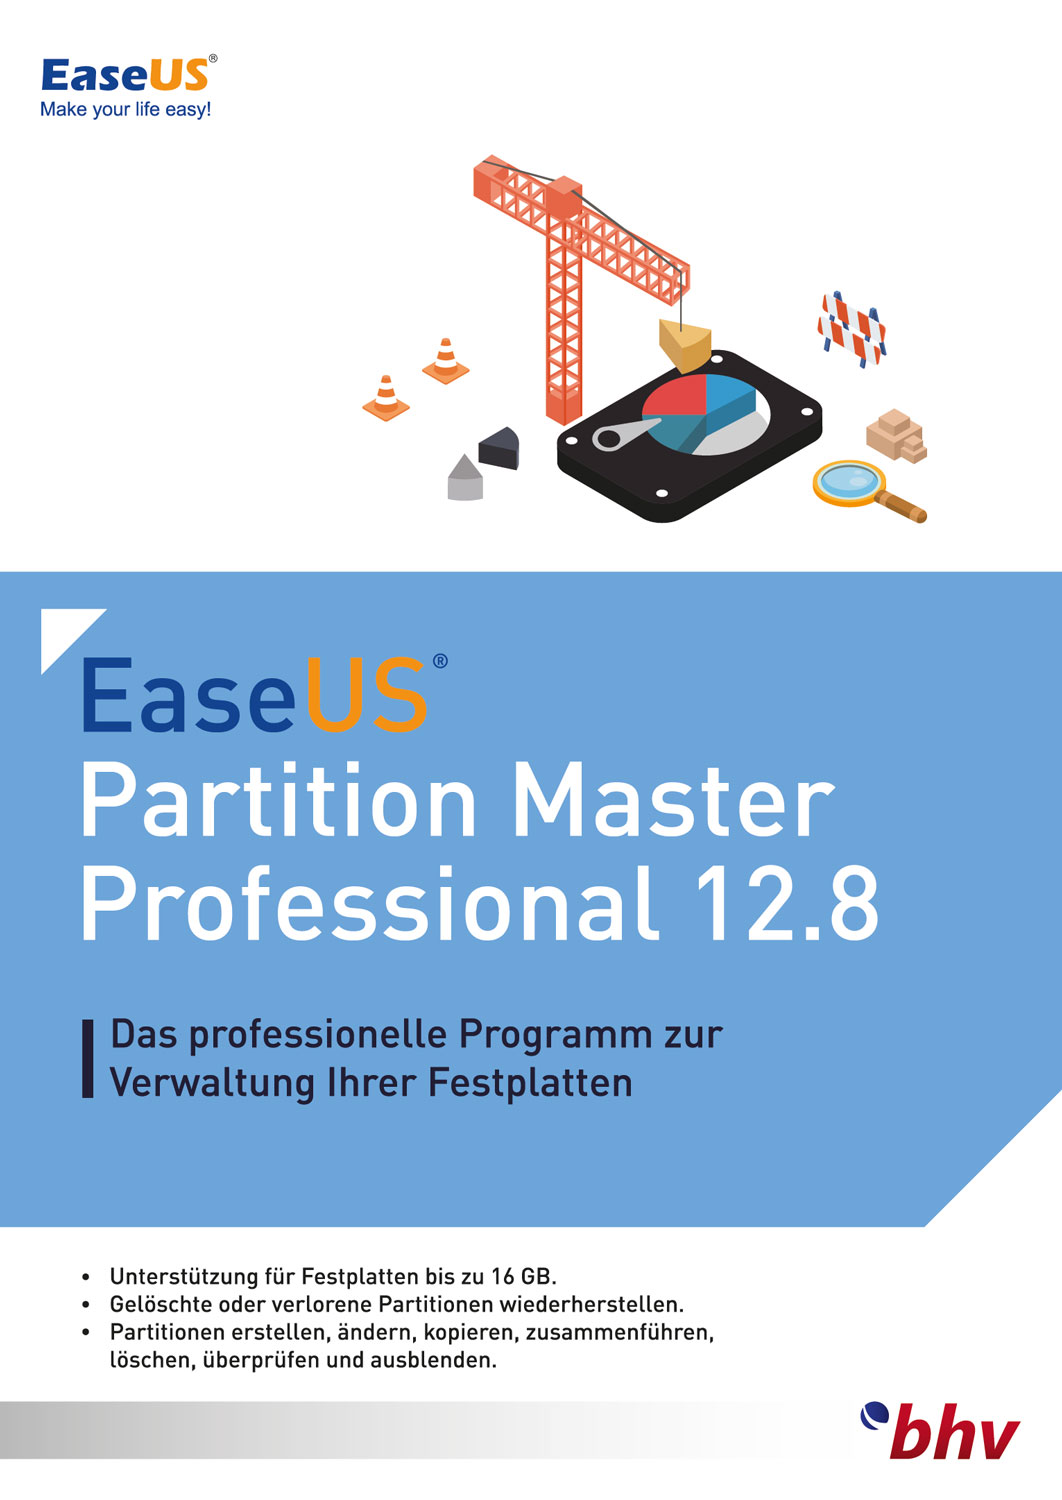 EaseUS Partition Master Professional 12.8 für PC [Download] (Festplatte Partition Software)